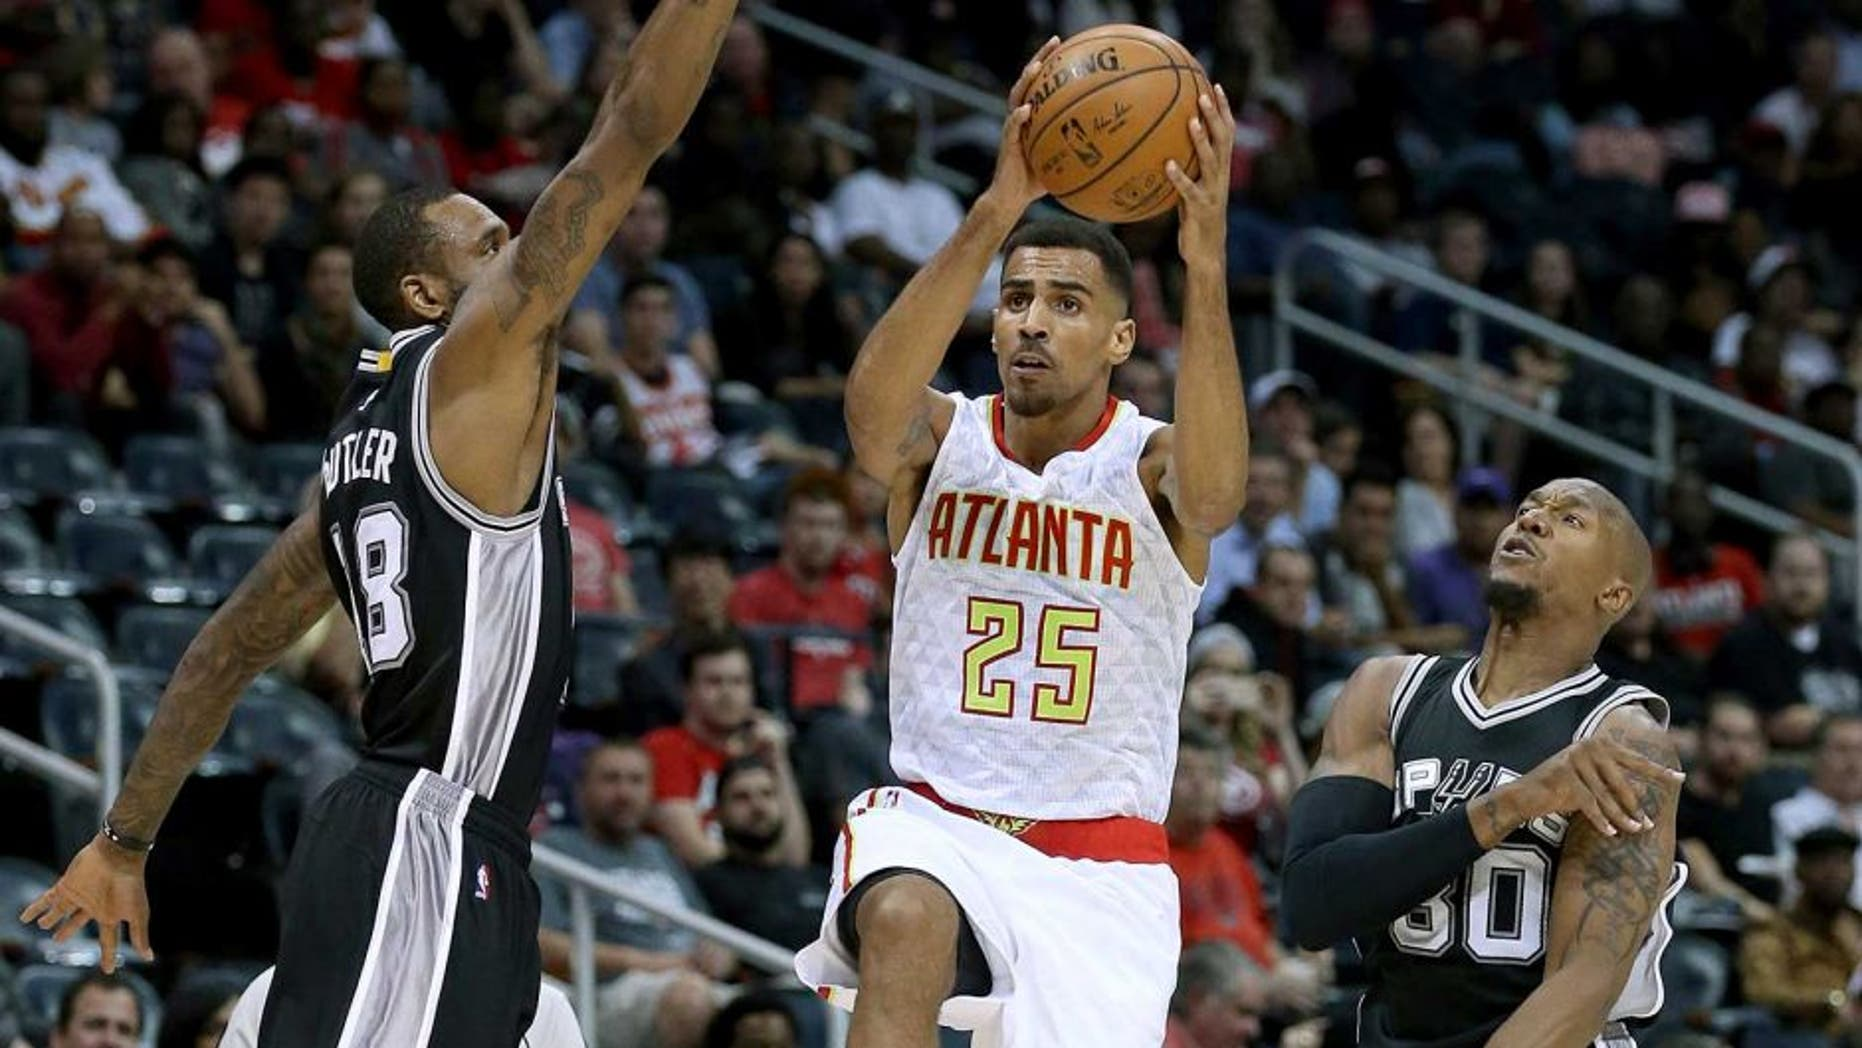 Oct 14, 2015; Atlanta, GA, USA; Atlanta Hawks guard Thabo Sefolosha (25) attempts a shot against San Antonio Spurs forward Rasual Butler (18, left) and forward David West (30) in the first quarter of their game at Philips Arena. Mandatory Credit: Jason Getz-USA TODAY Sports